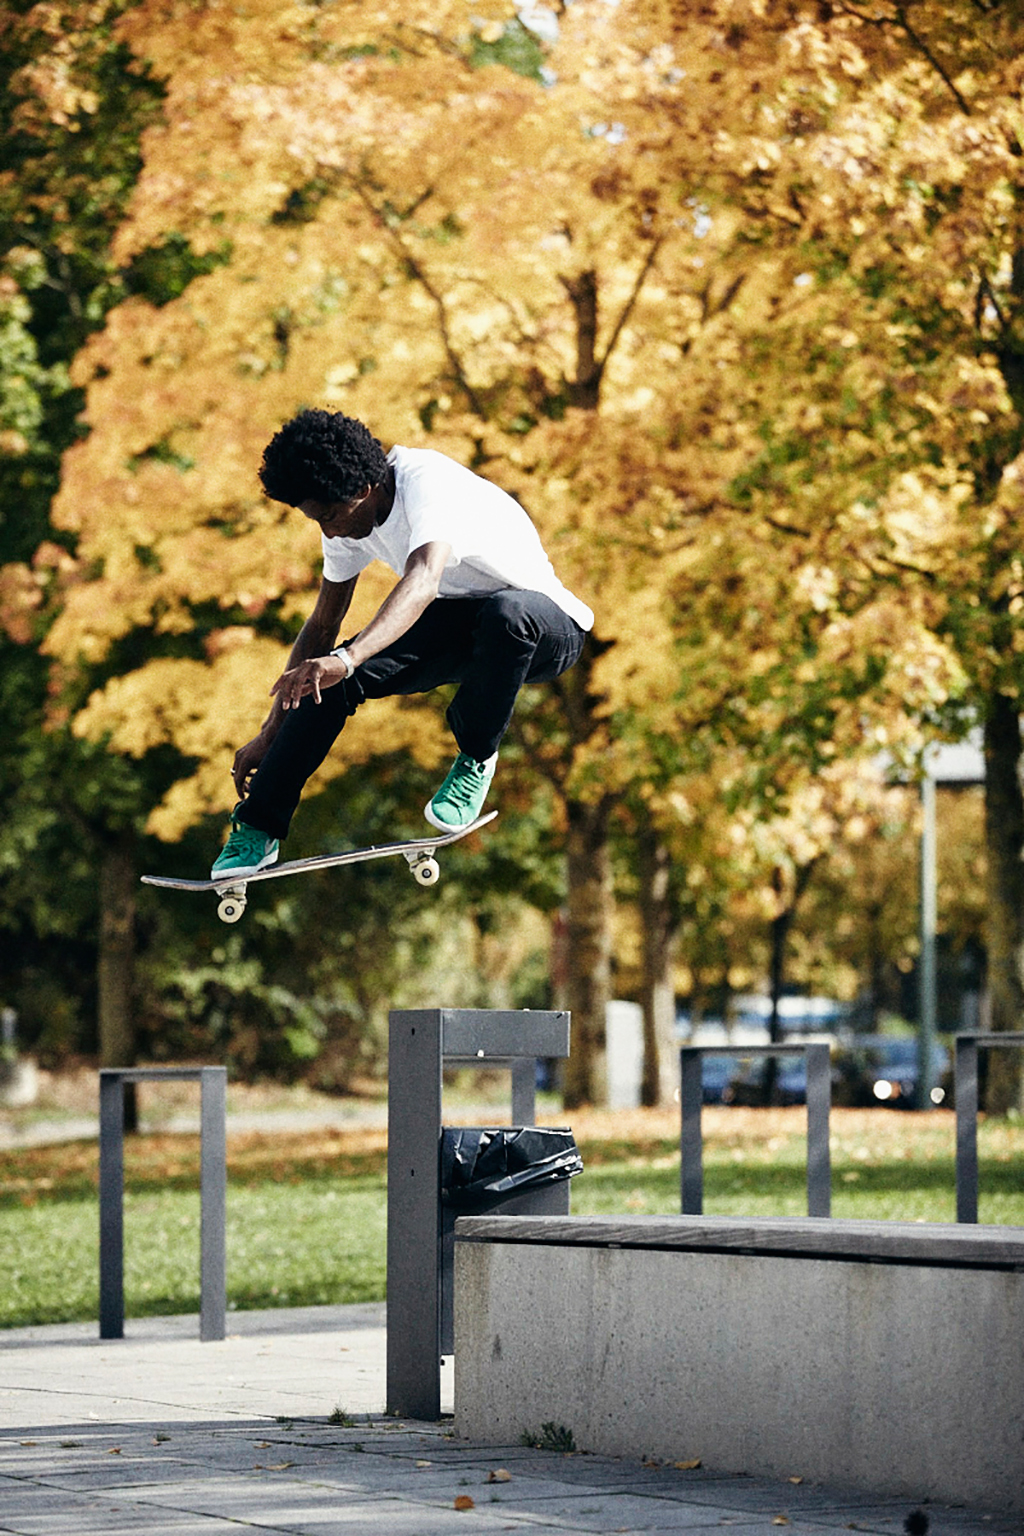 Collin McLean, Shifty Ollie, Nike SB, Call it a day   fine lines Marketing